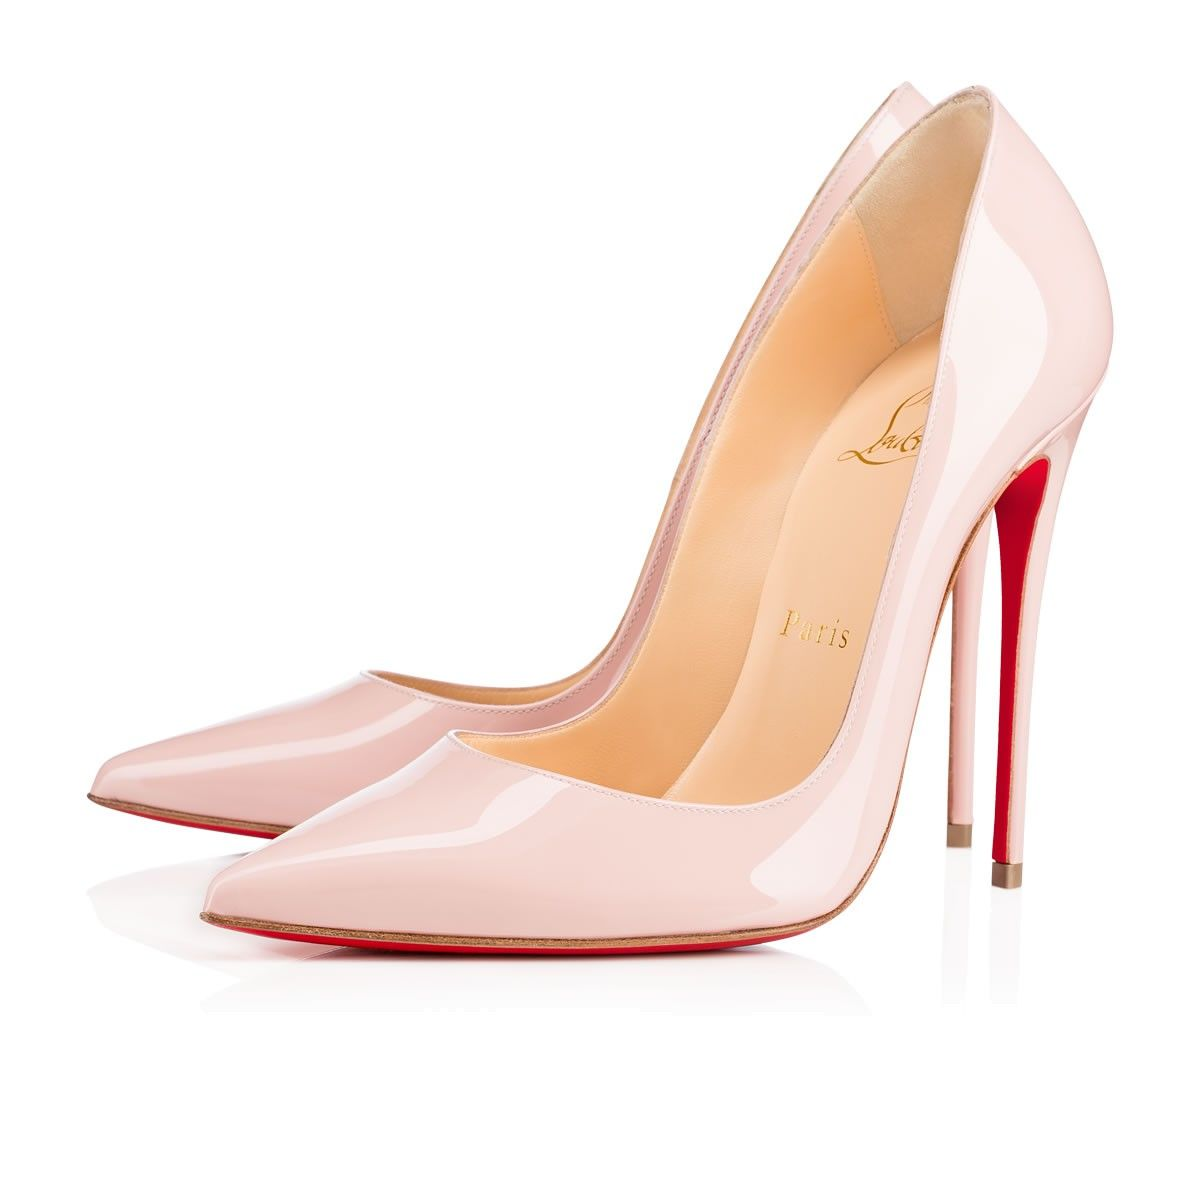 c6ffcaeebe7b CHRISTIAN LOUBOUTIN SO KATE PATENT 120 Pink Patent calfskin - Women Shoes - Christian  Louboutin.  christianlouboutin  shoes